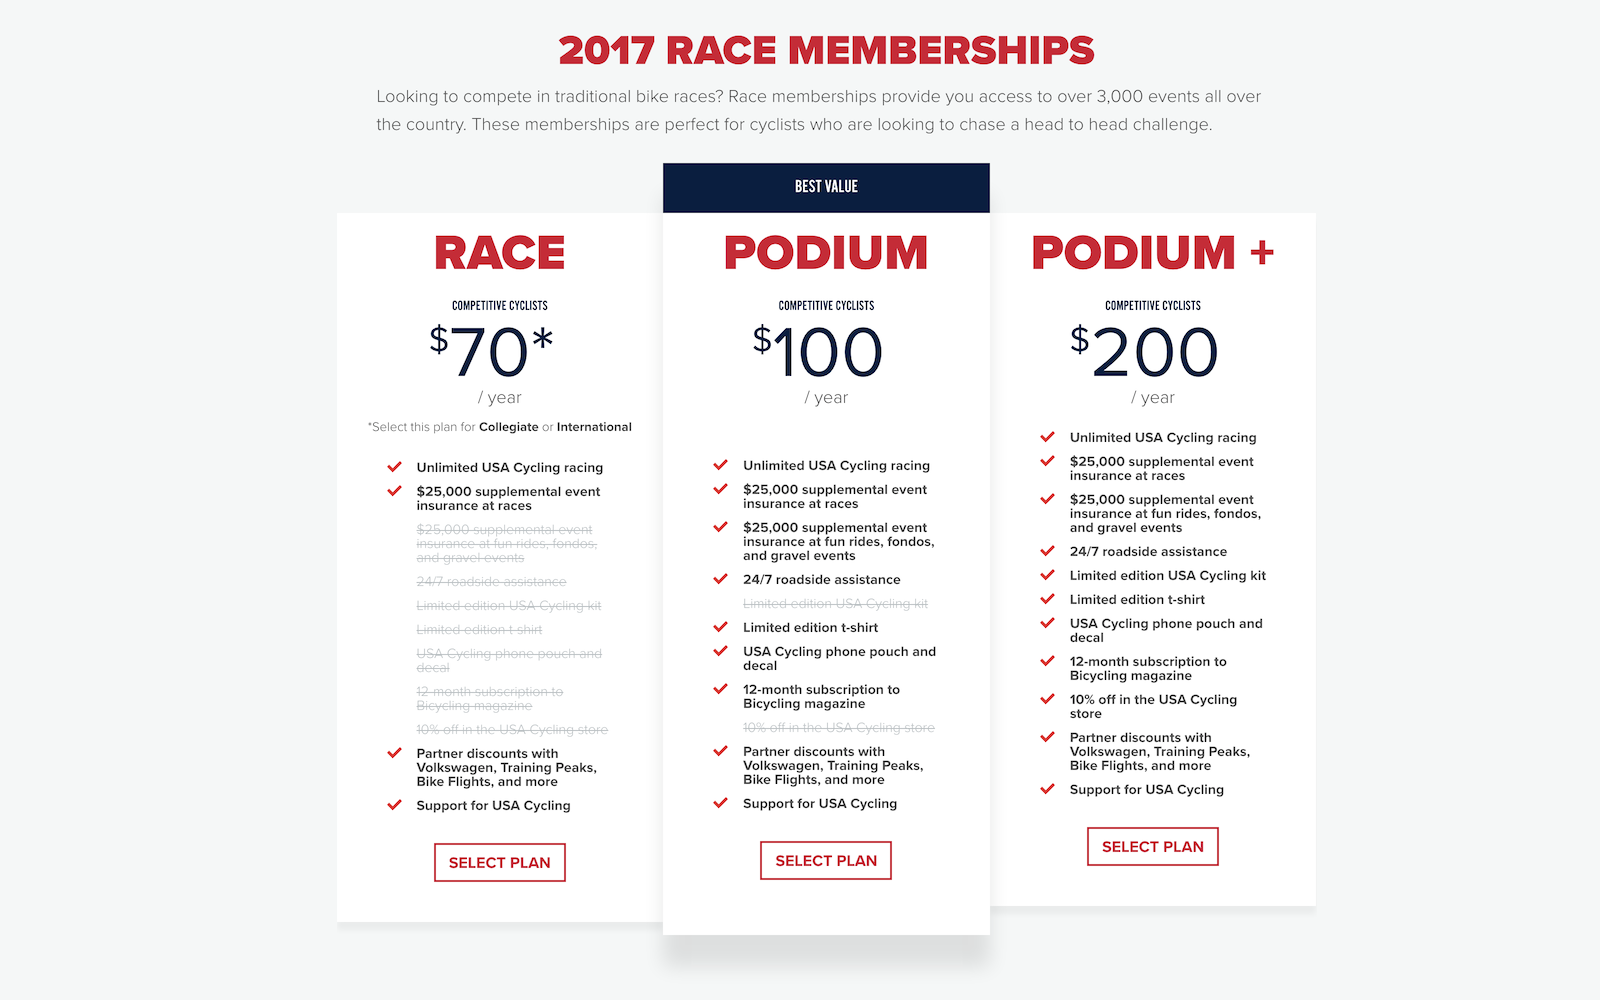 USA Cycling's new, tiered membership plan for 2017.